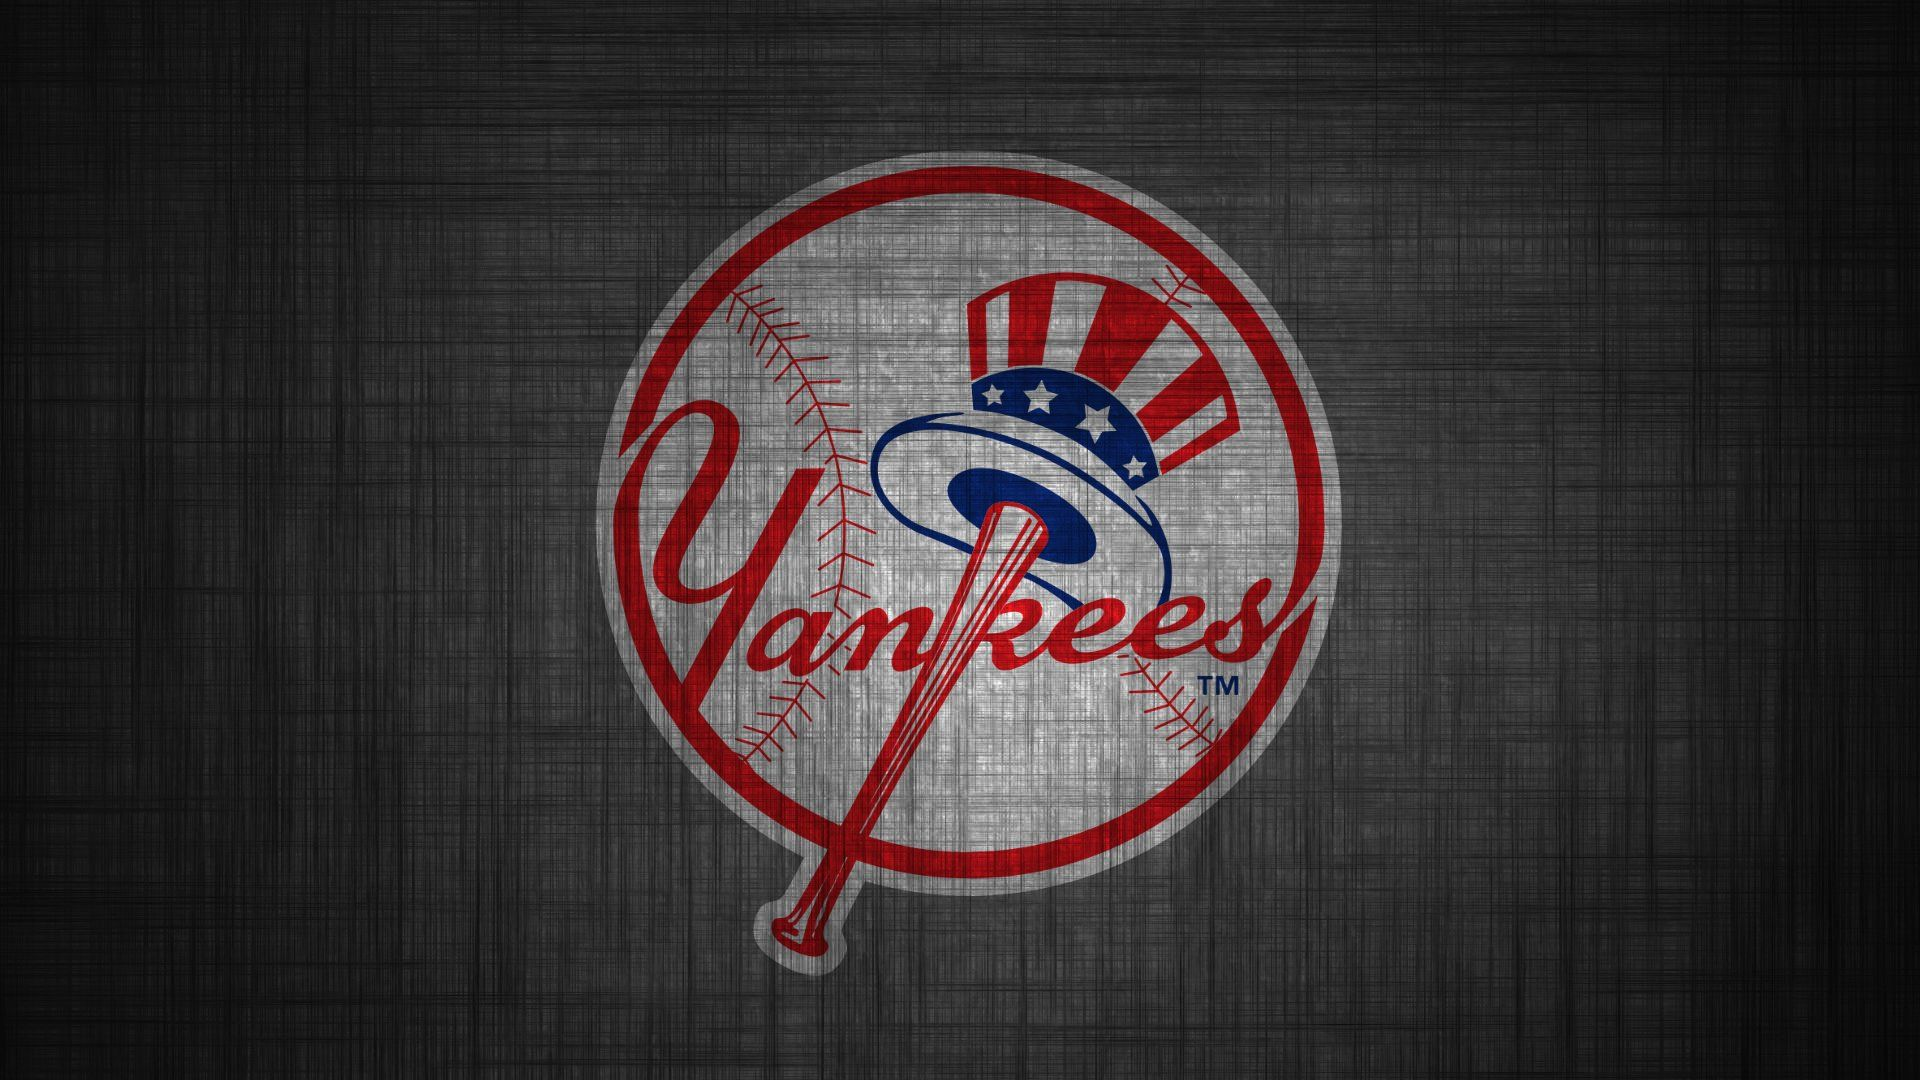 New York Yankees Wallpaper HD - Best Wallpaper HD